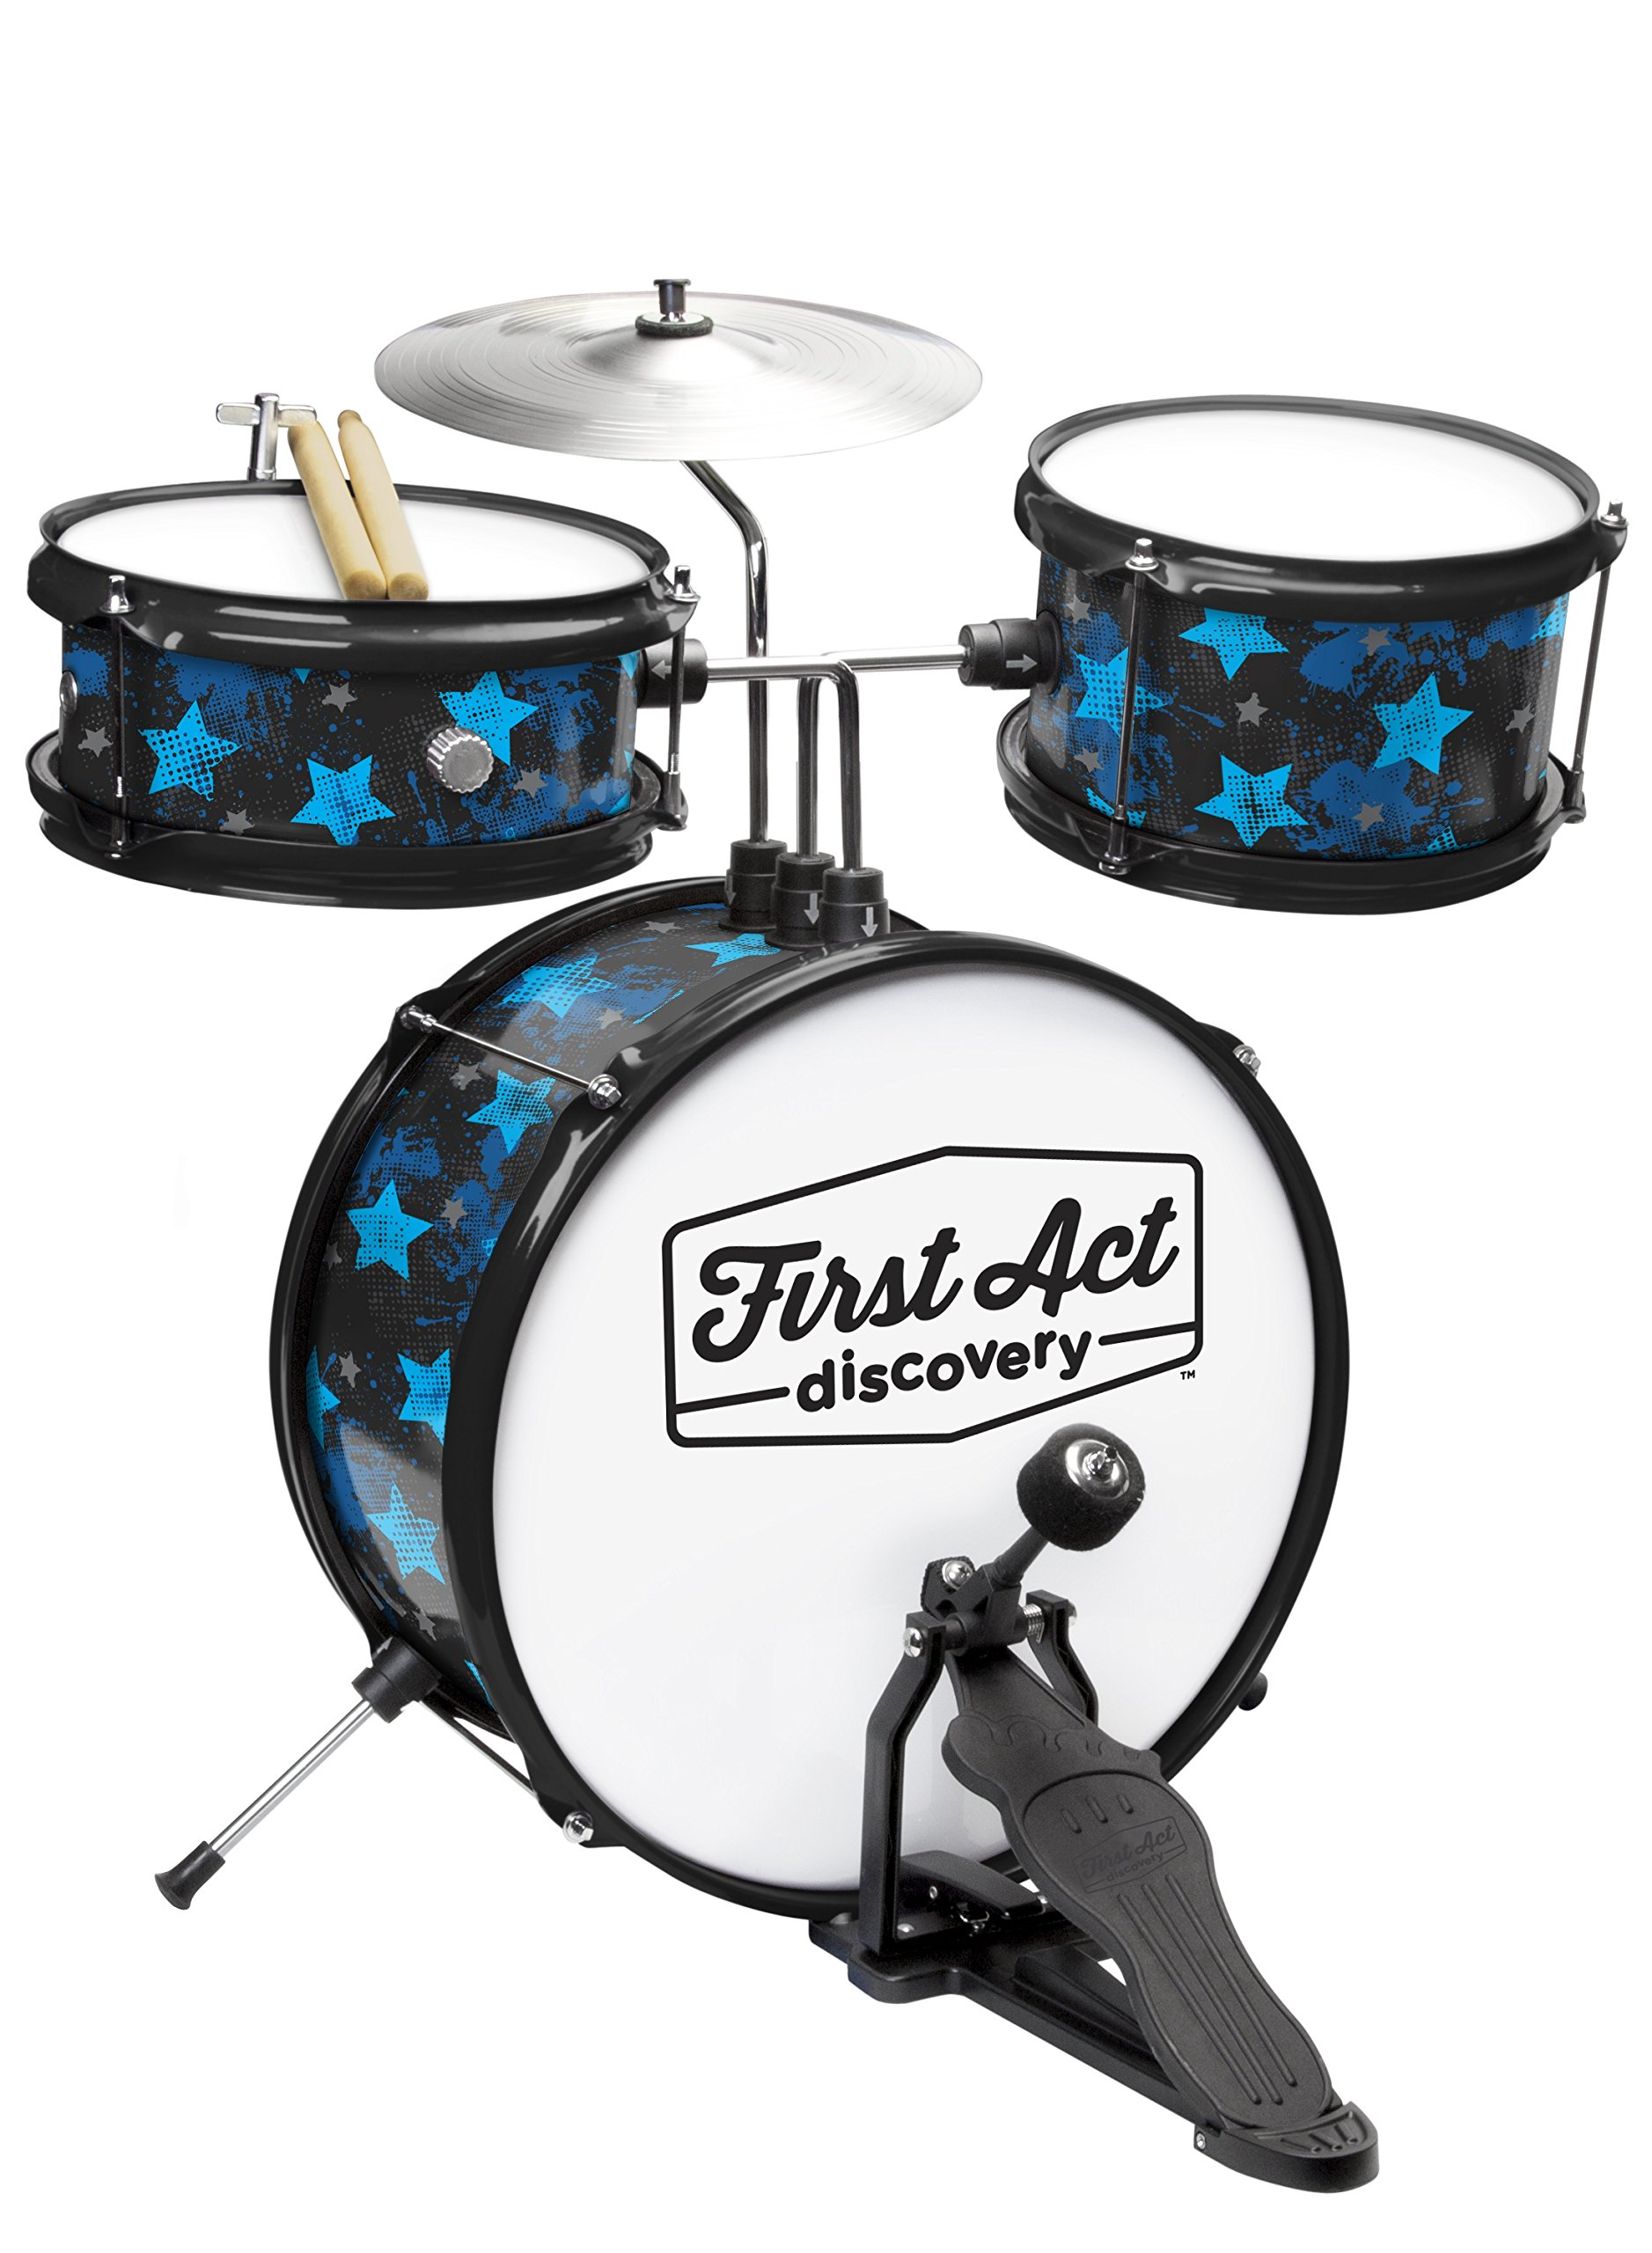 First Act Discovery Rock Stars Drum Set